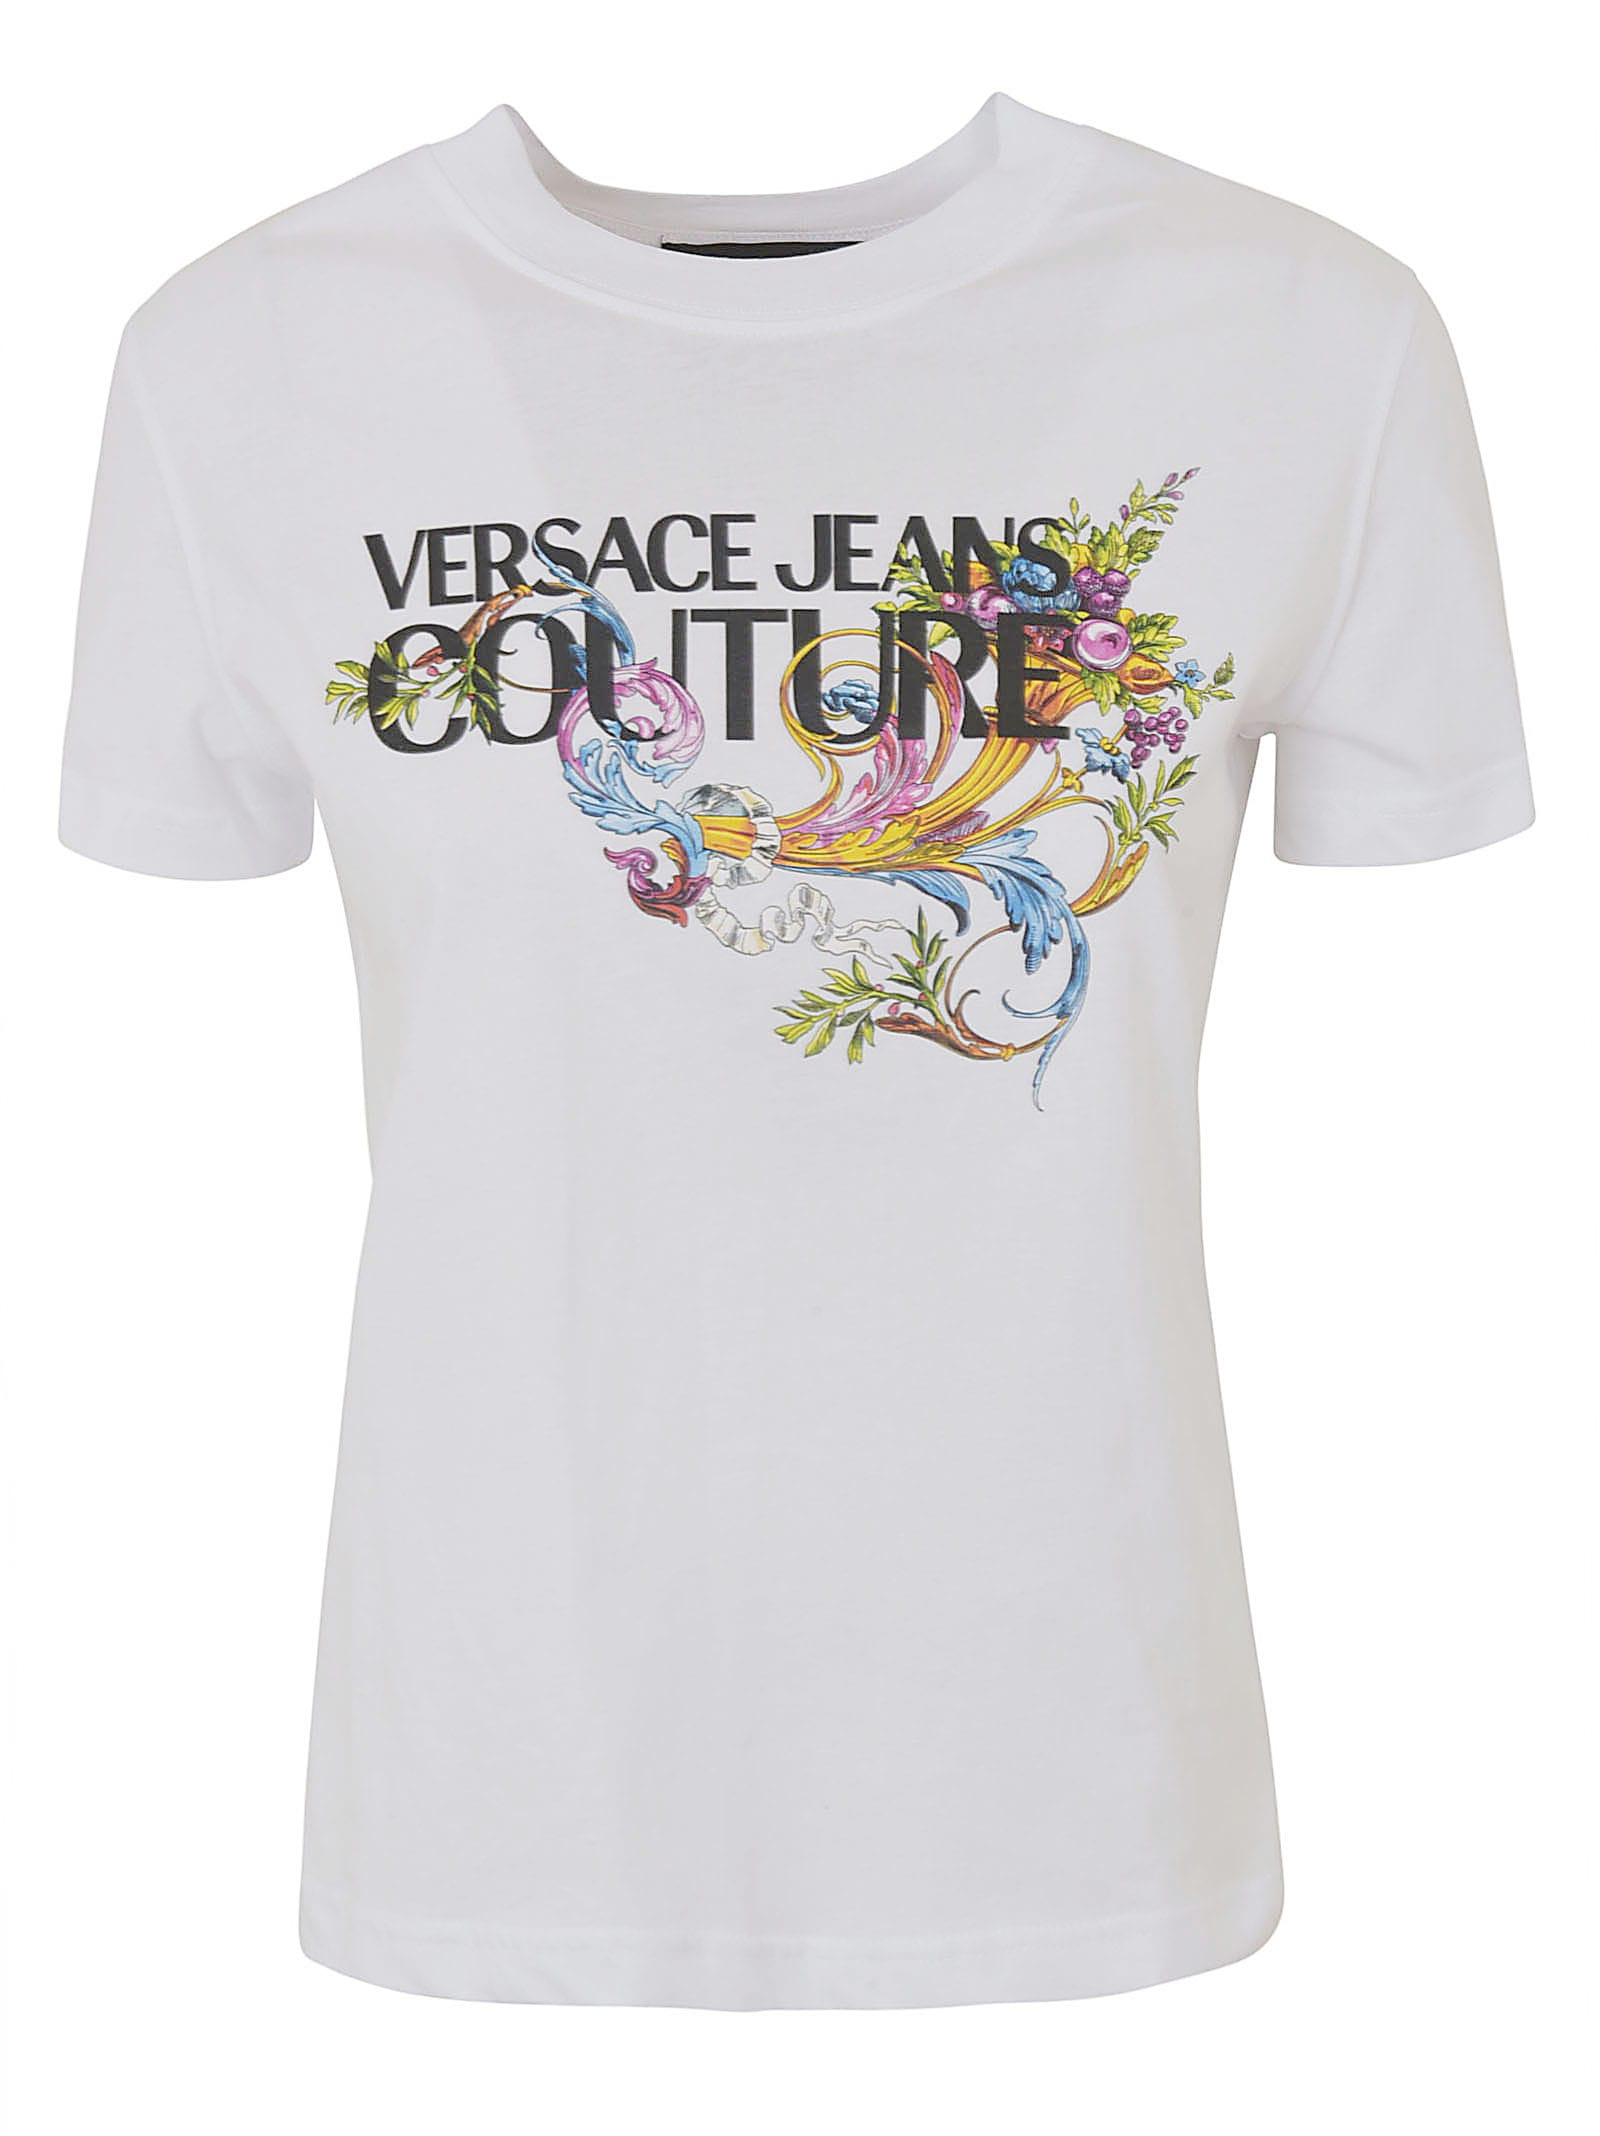 Versace Jeans Couture FLORAL COUTURE PRINTED T-SHIRT